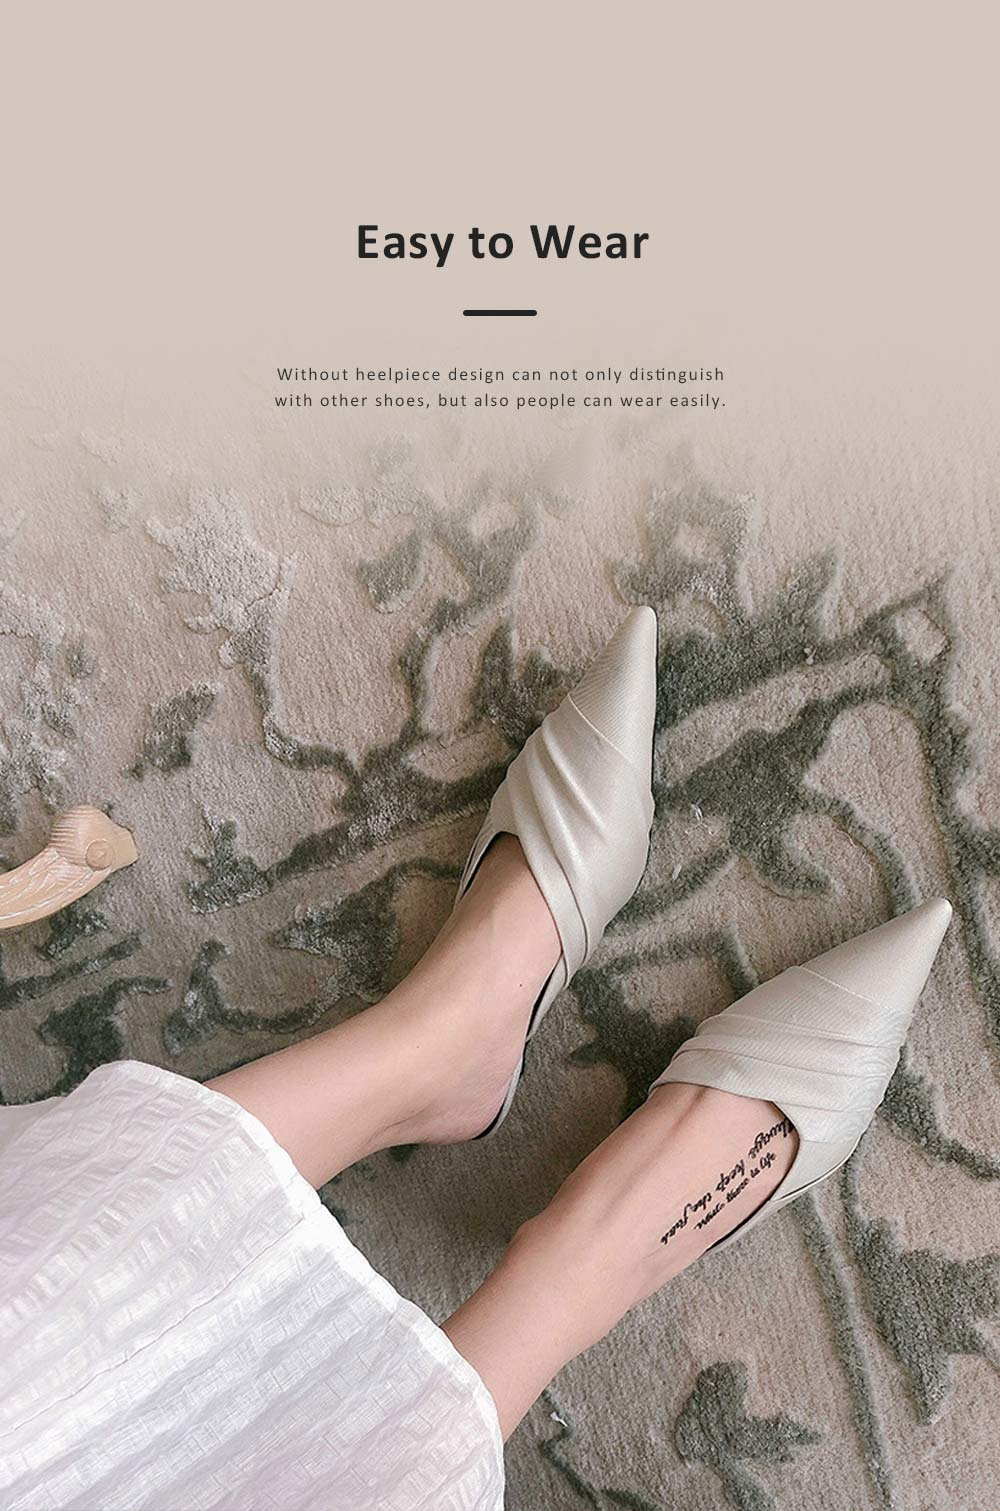 Pointy Shoes for Women, Low-heeled Waterproof Platform Sandals, Leather Material without Heelpiece Slippers 4